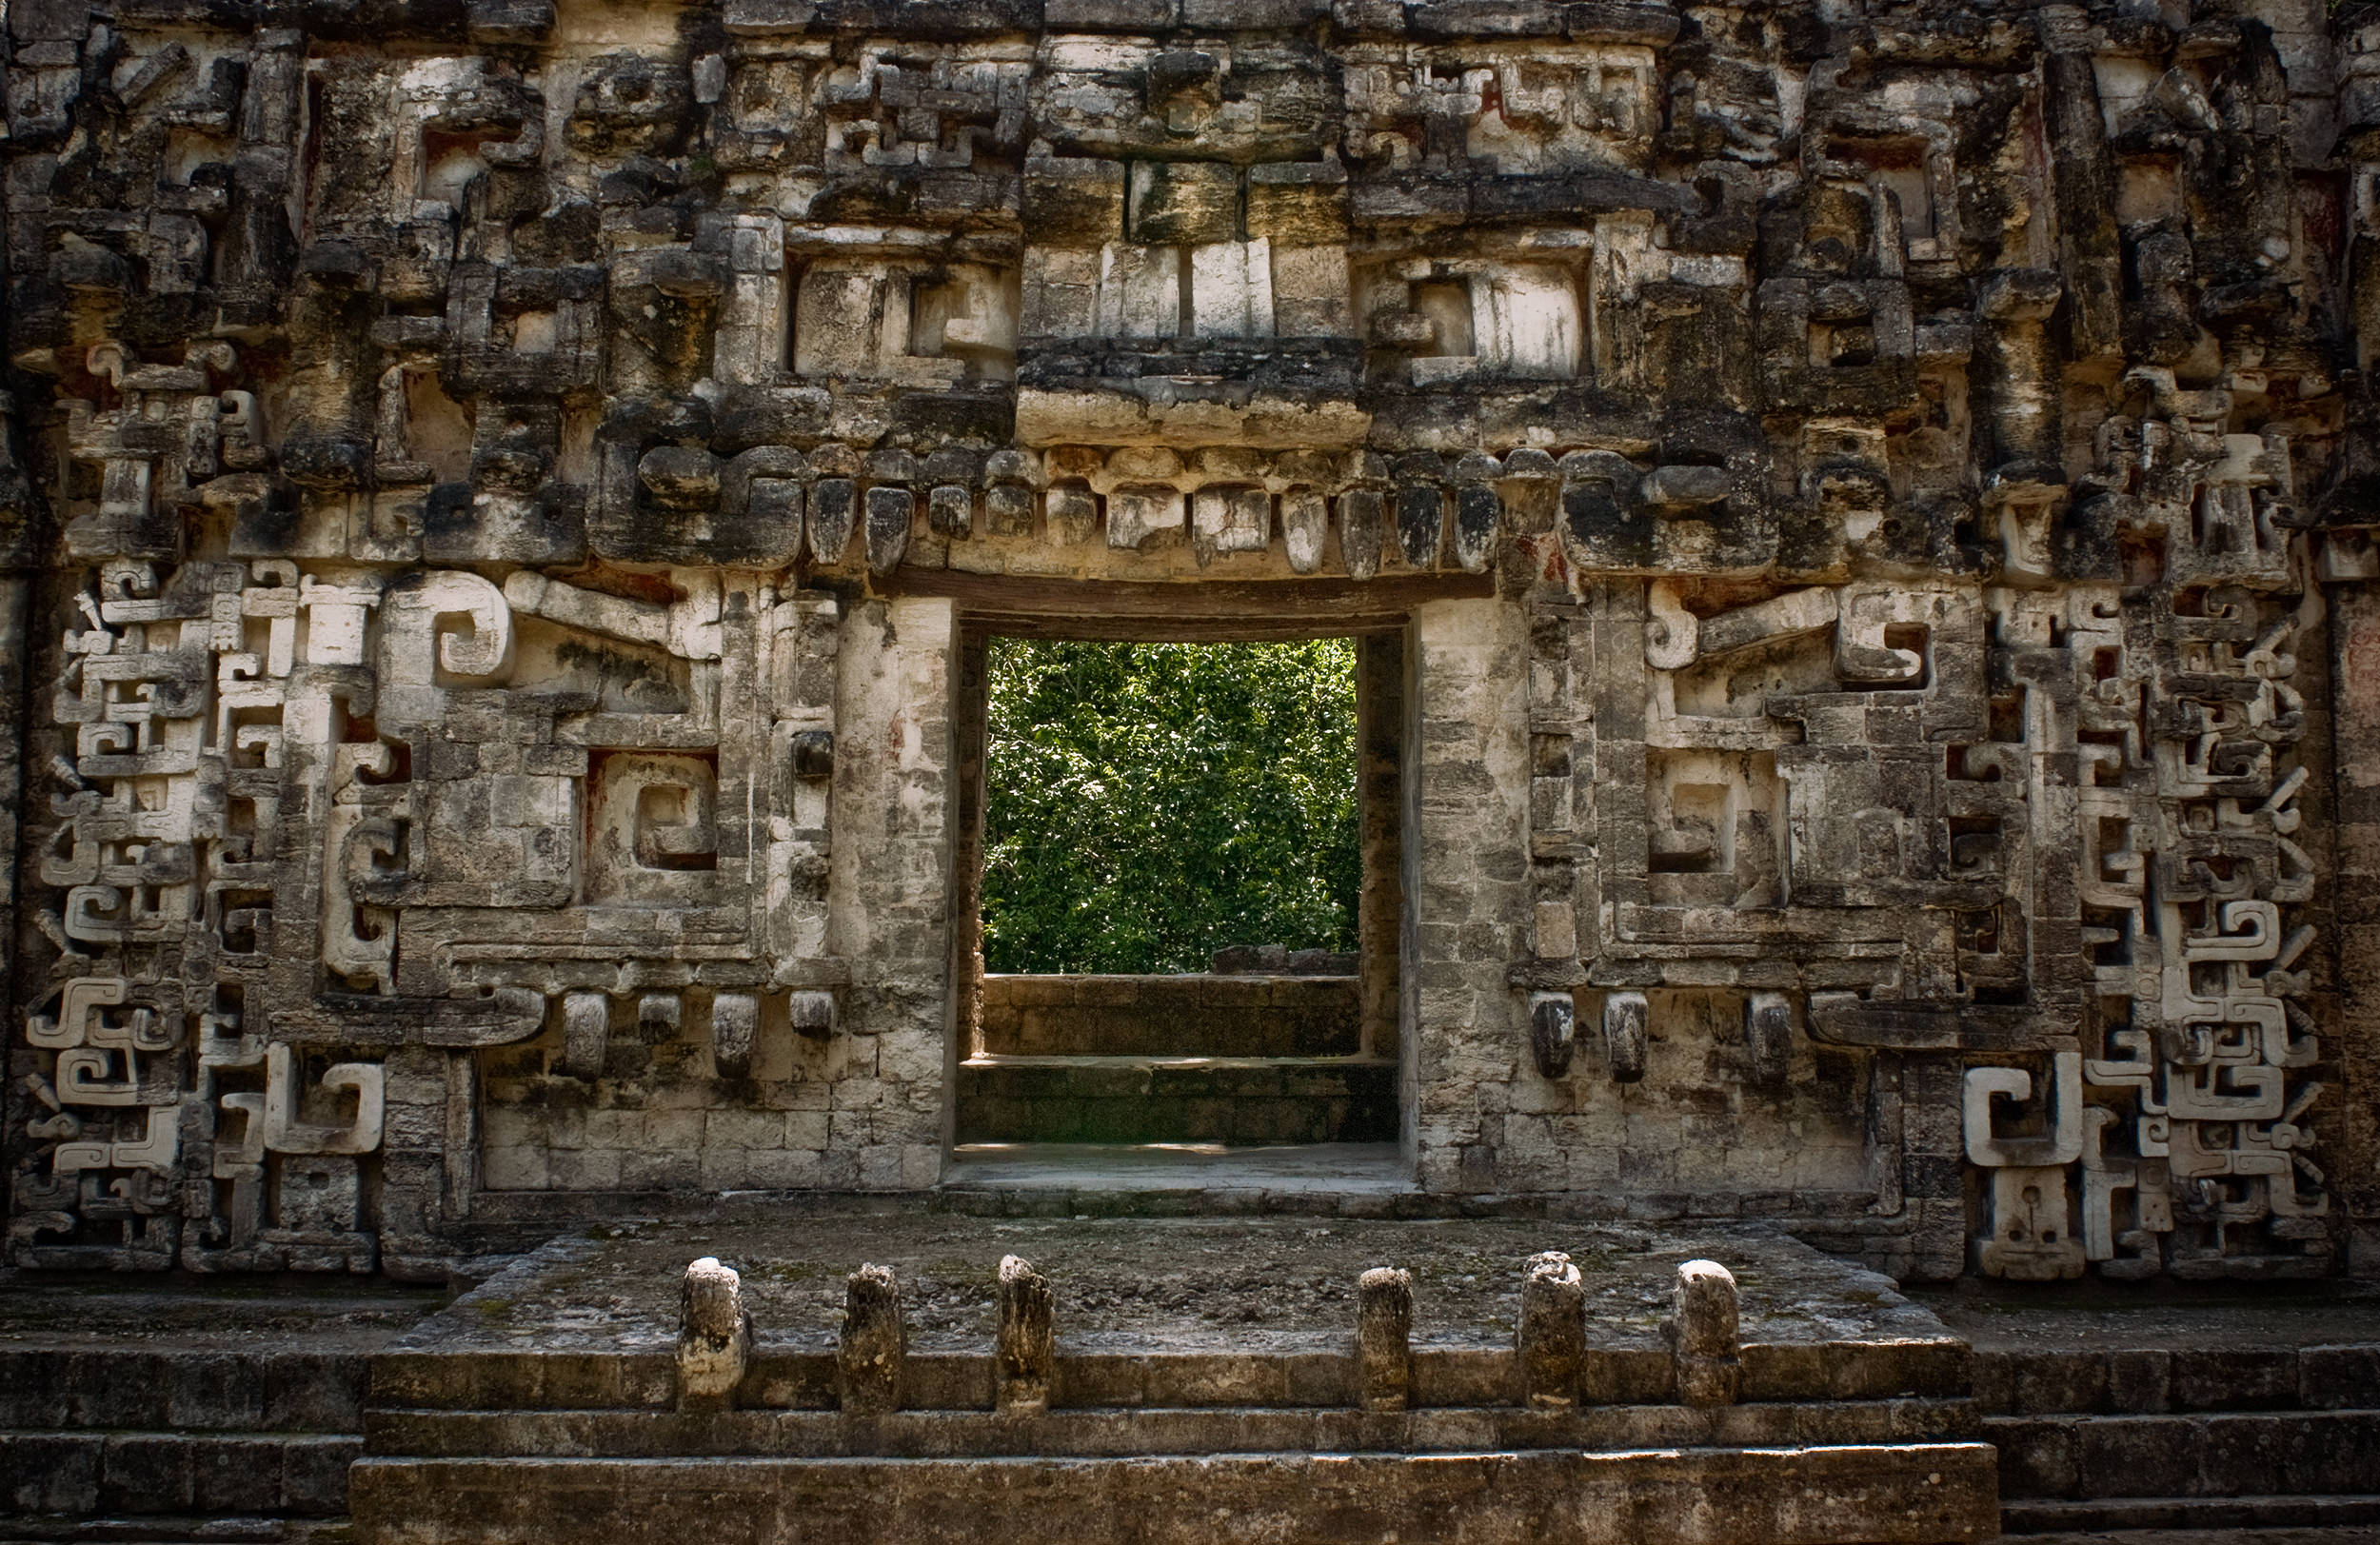 wojtek-jakubiec-photographer-montreal-mayan-mexico-documentary-chichenitza-jaguar-wall.jpg